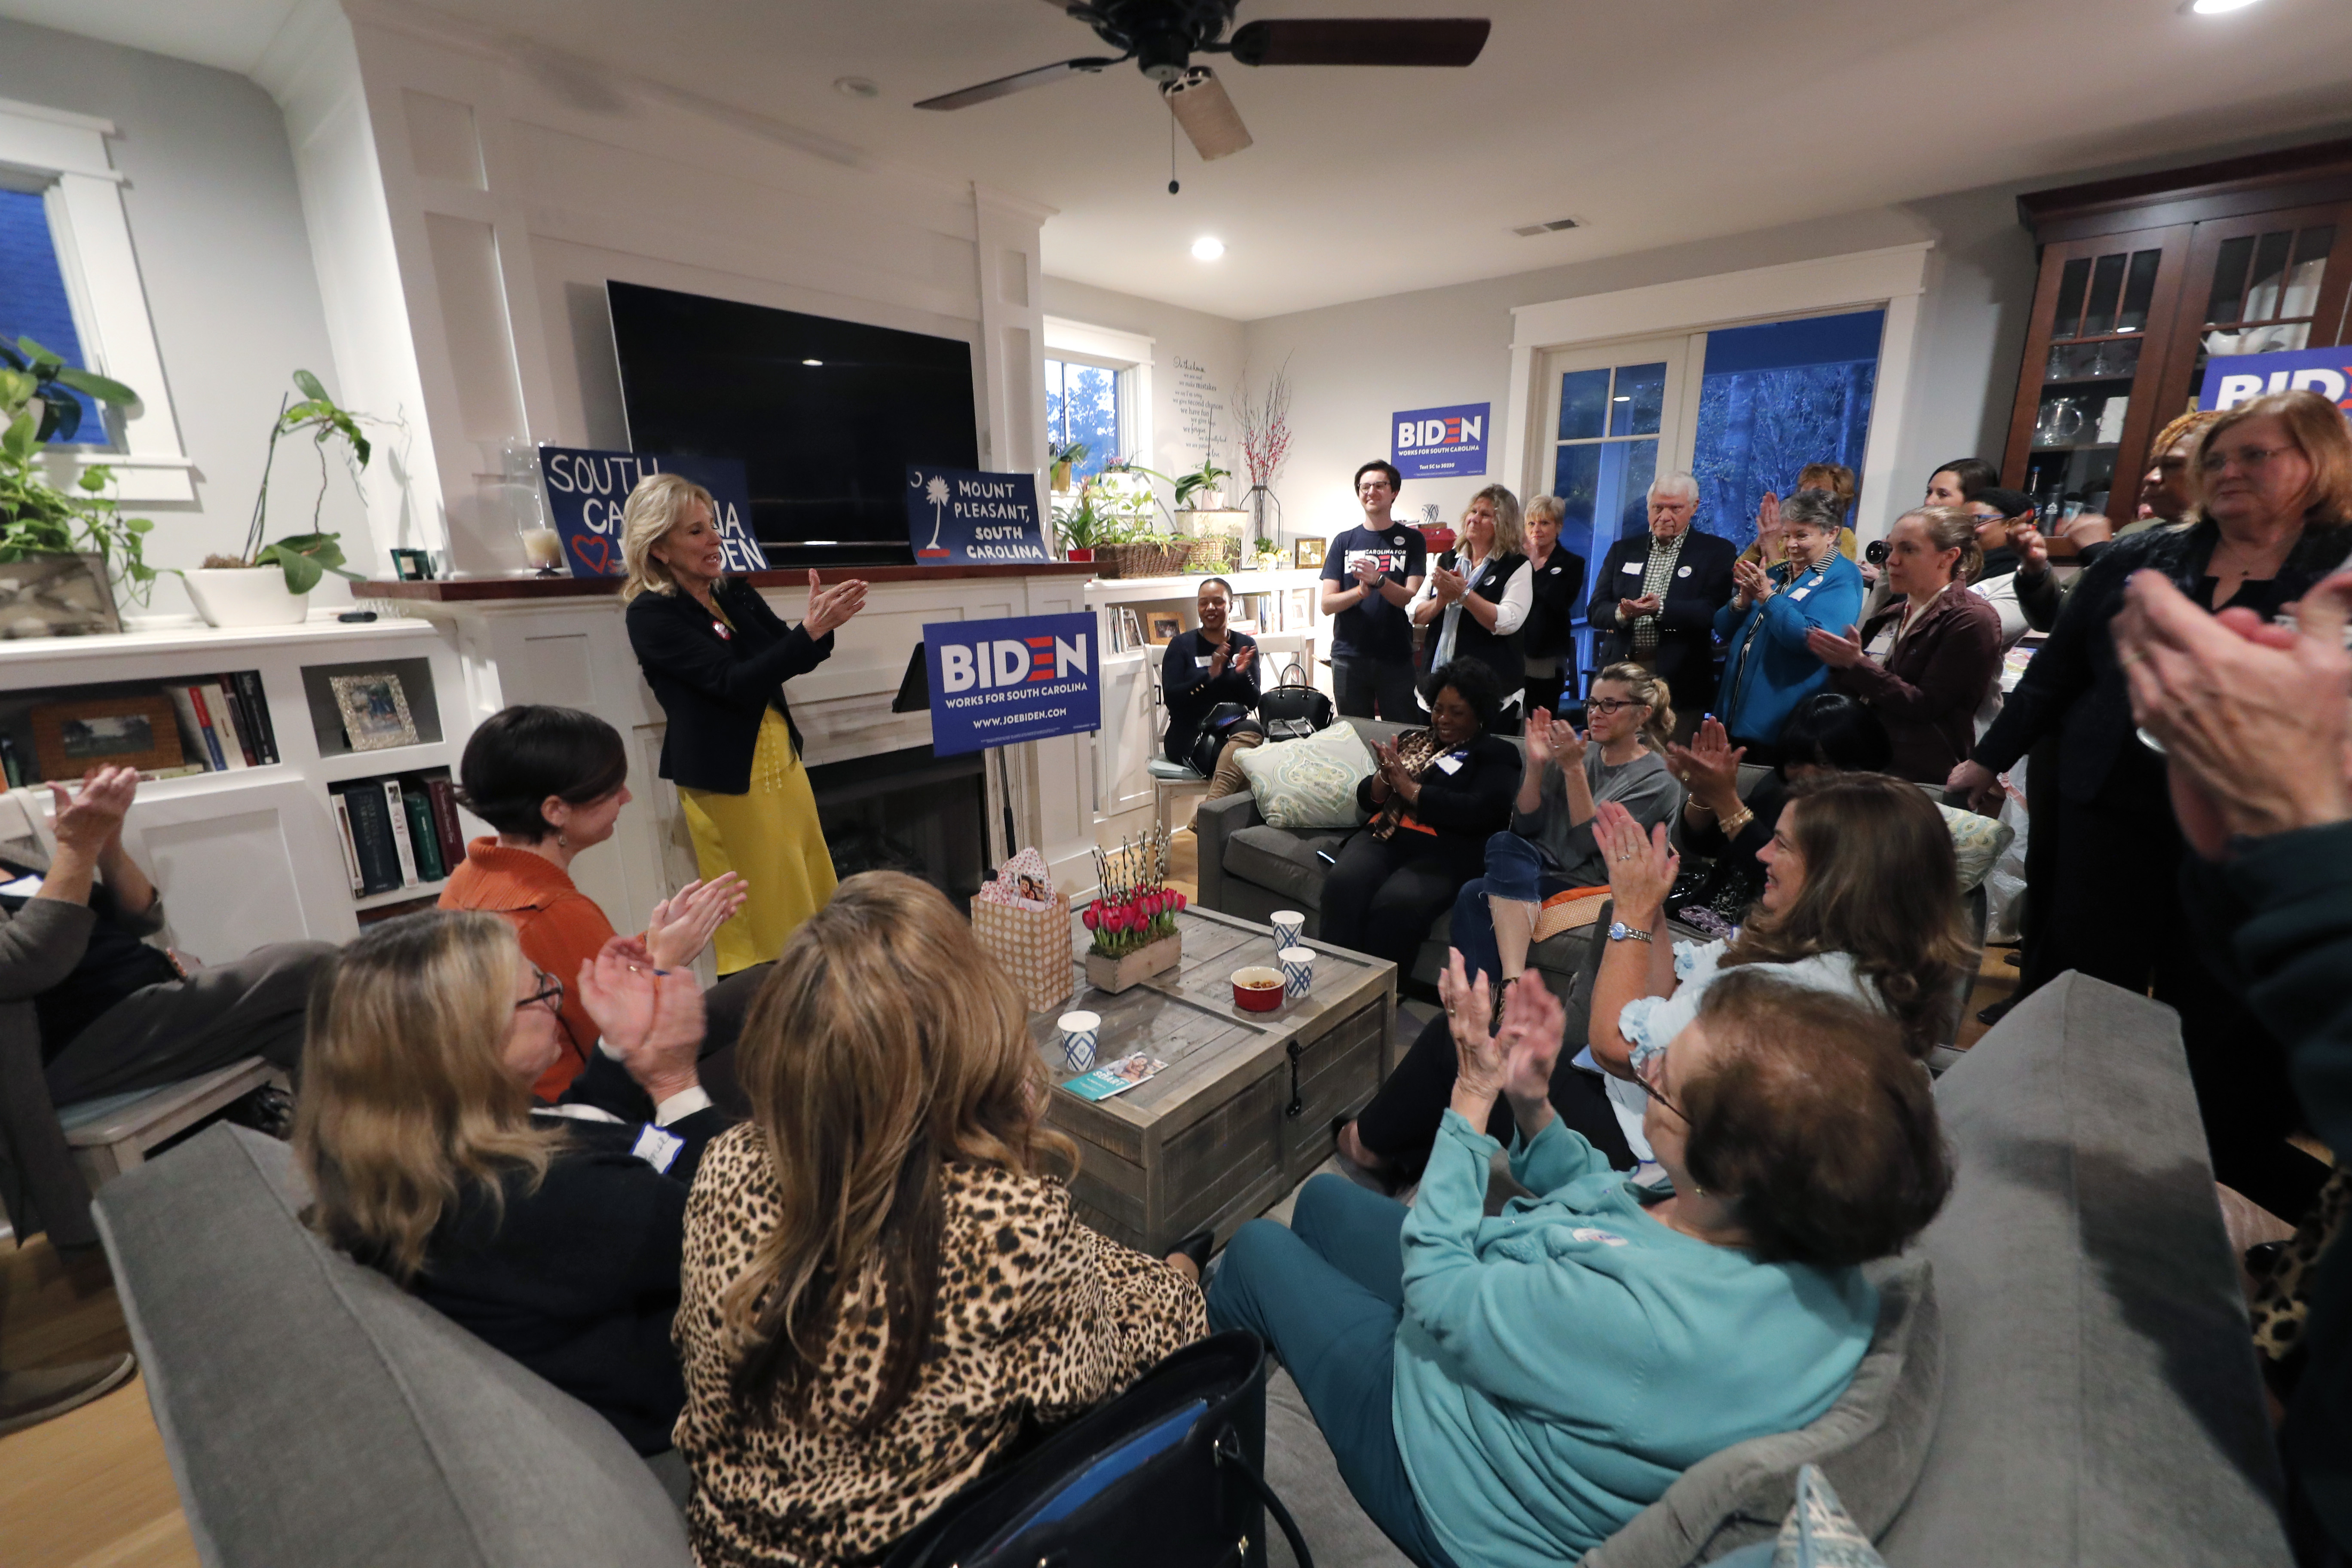 Jill Biden, wife of Democratic presidential candidate and former Vice President Joe Biden, speaks at a campaign event at the home of state senate candidate Richard Hricik in Mt. Pleasant, S.C. on Feb. 17, 2020. (Gerald Herbert/AP)